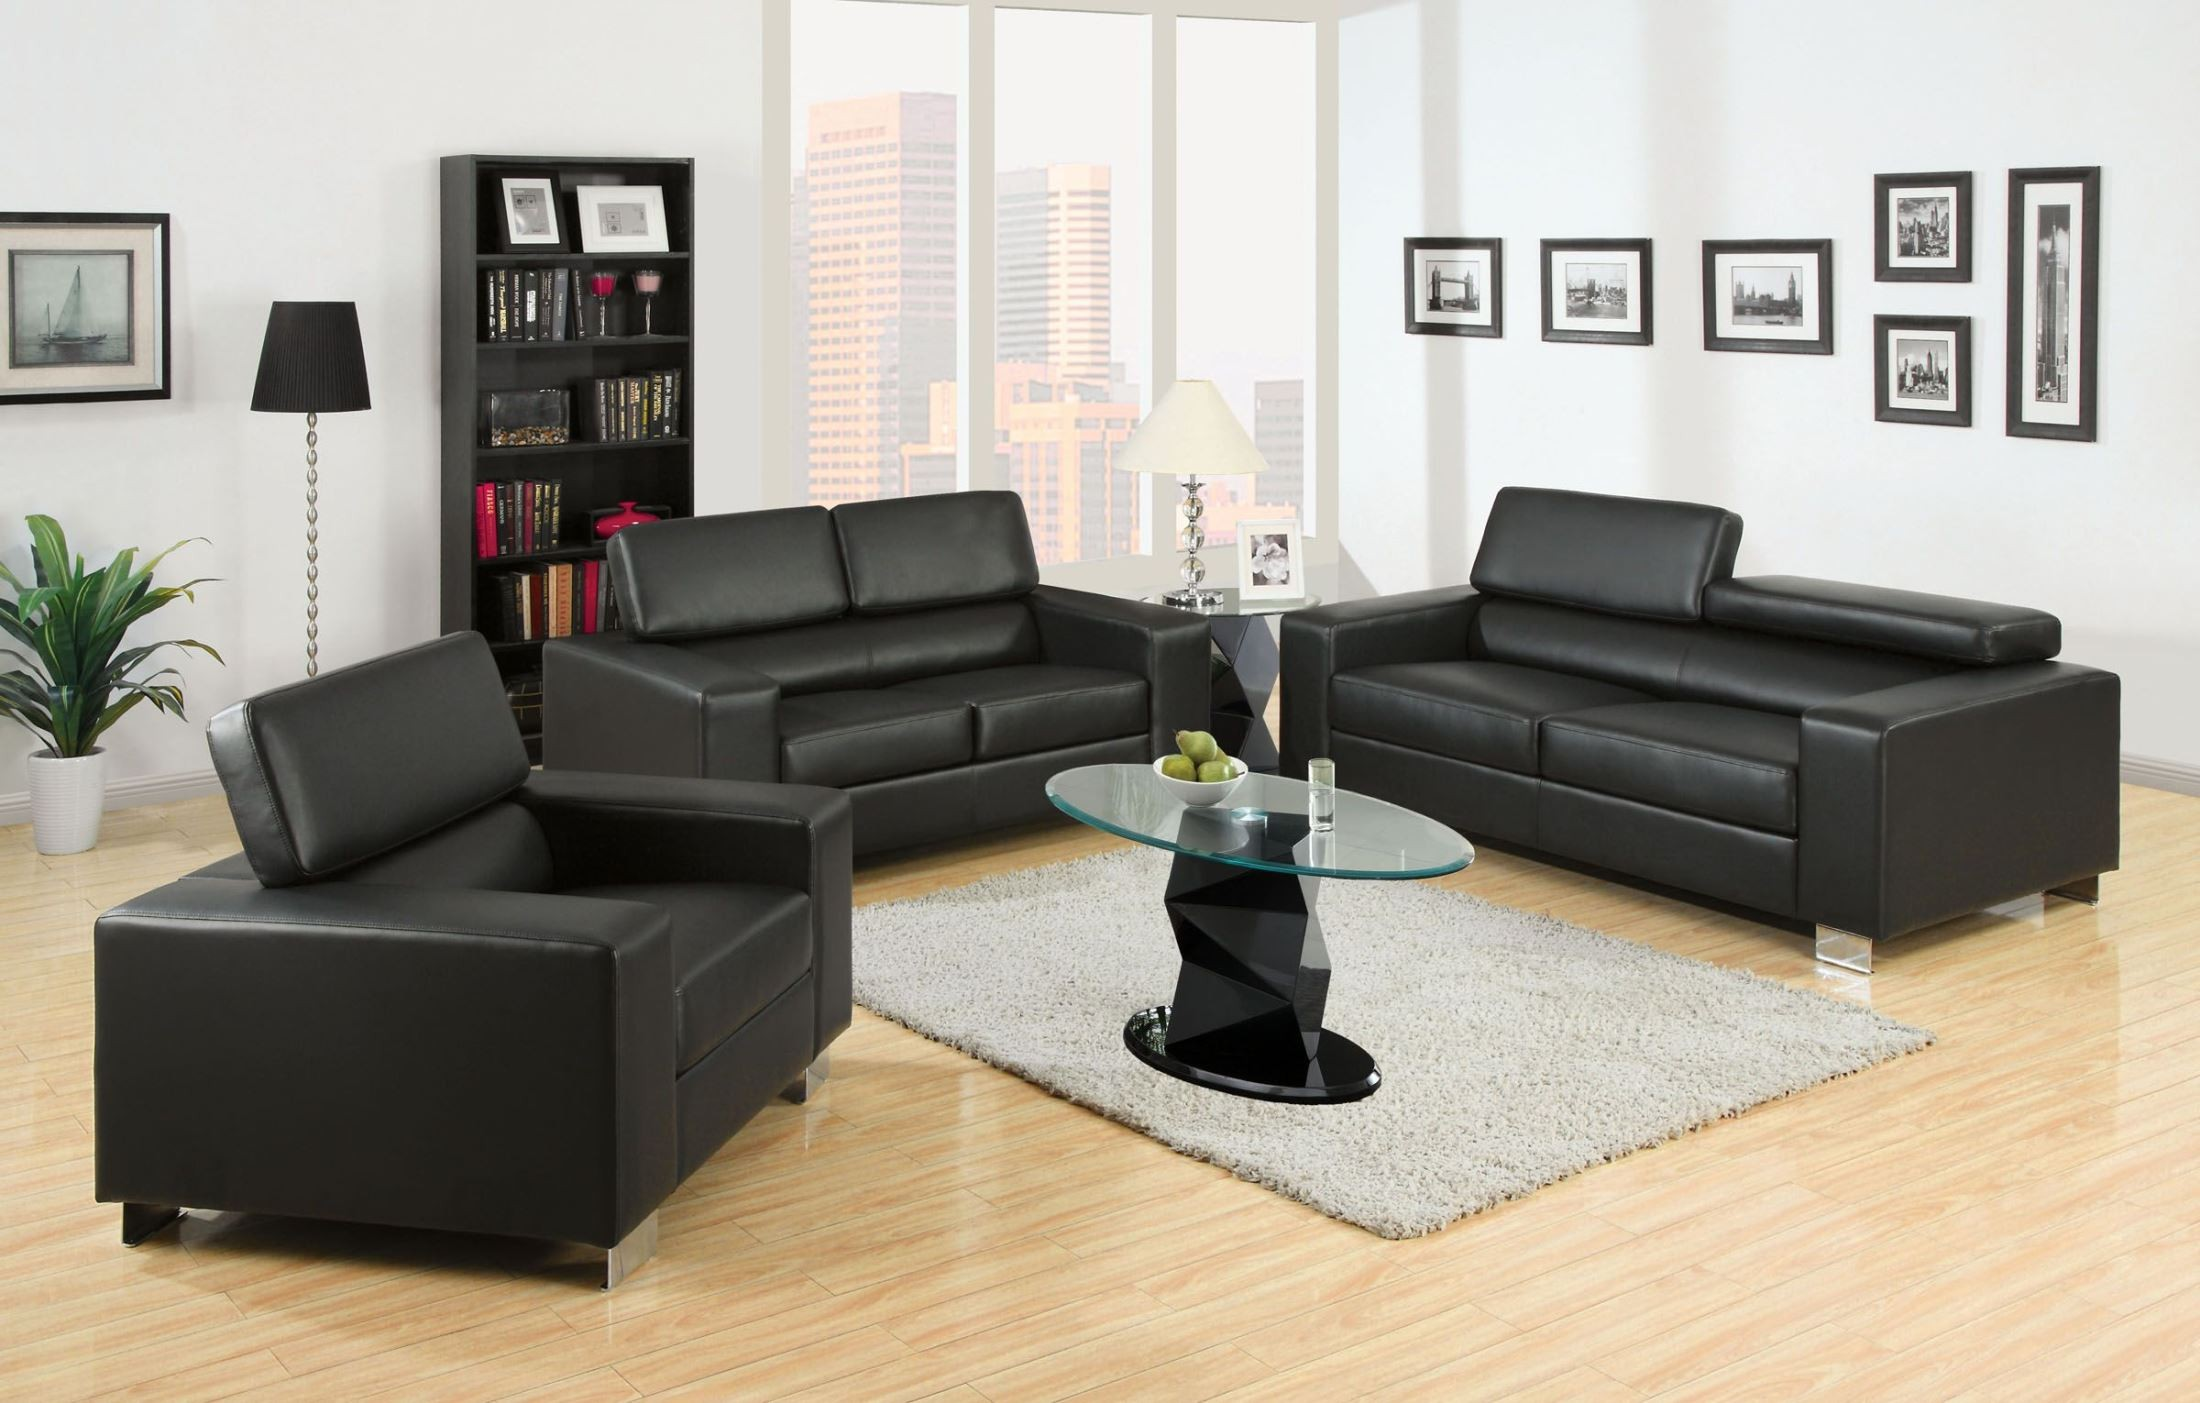 Makri black bonded leather match living room set cm6336bk for Matching living room furniture